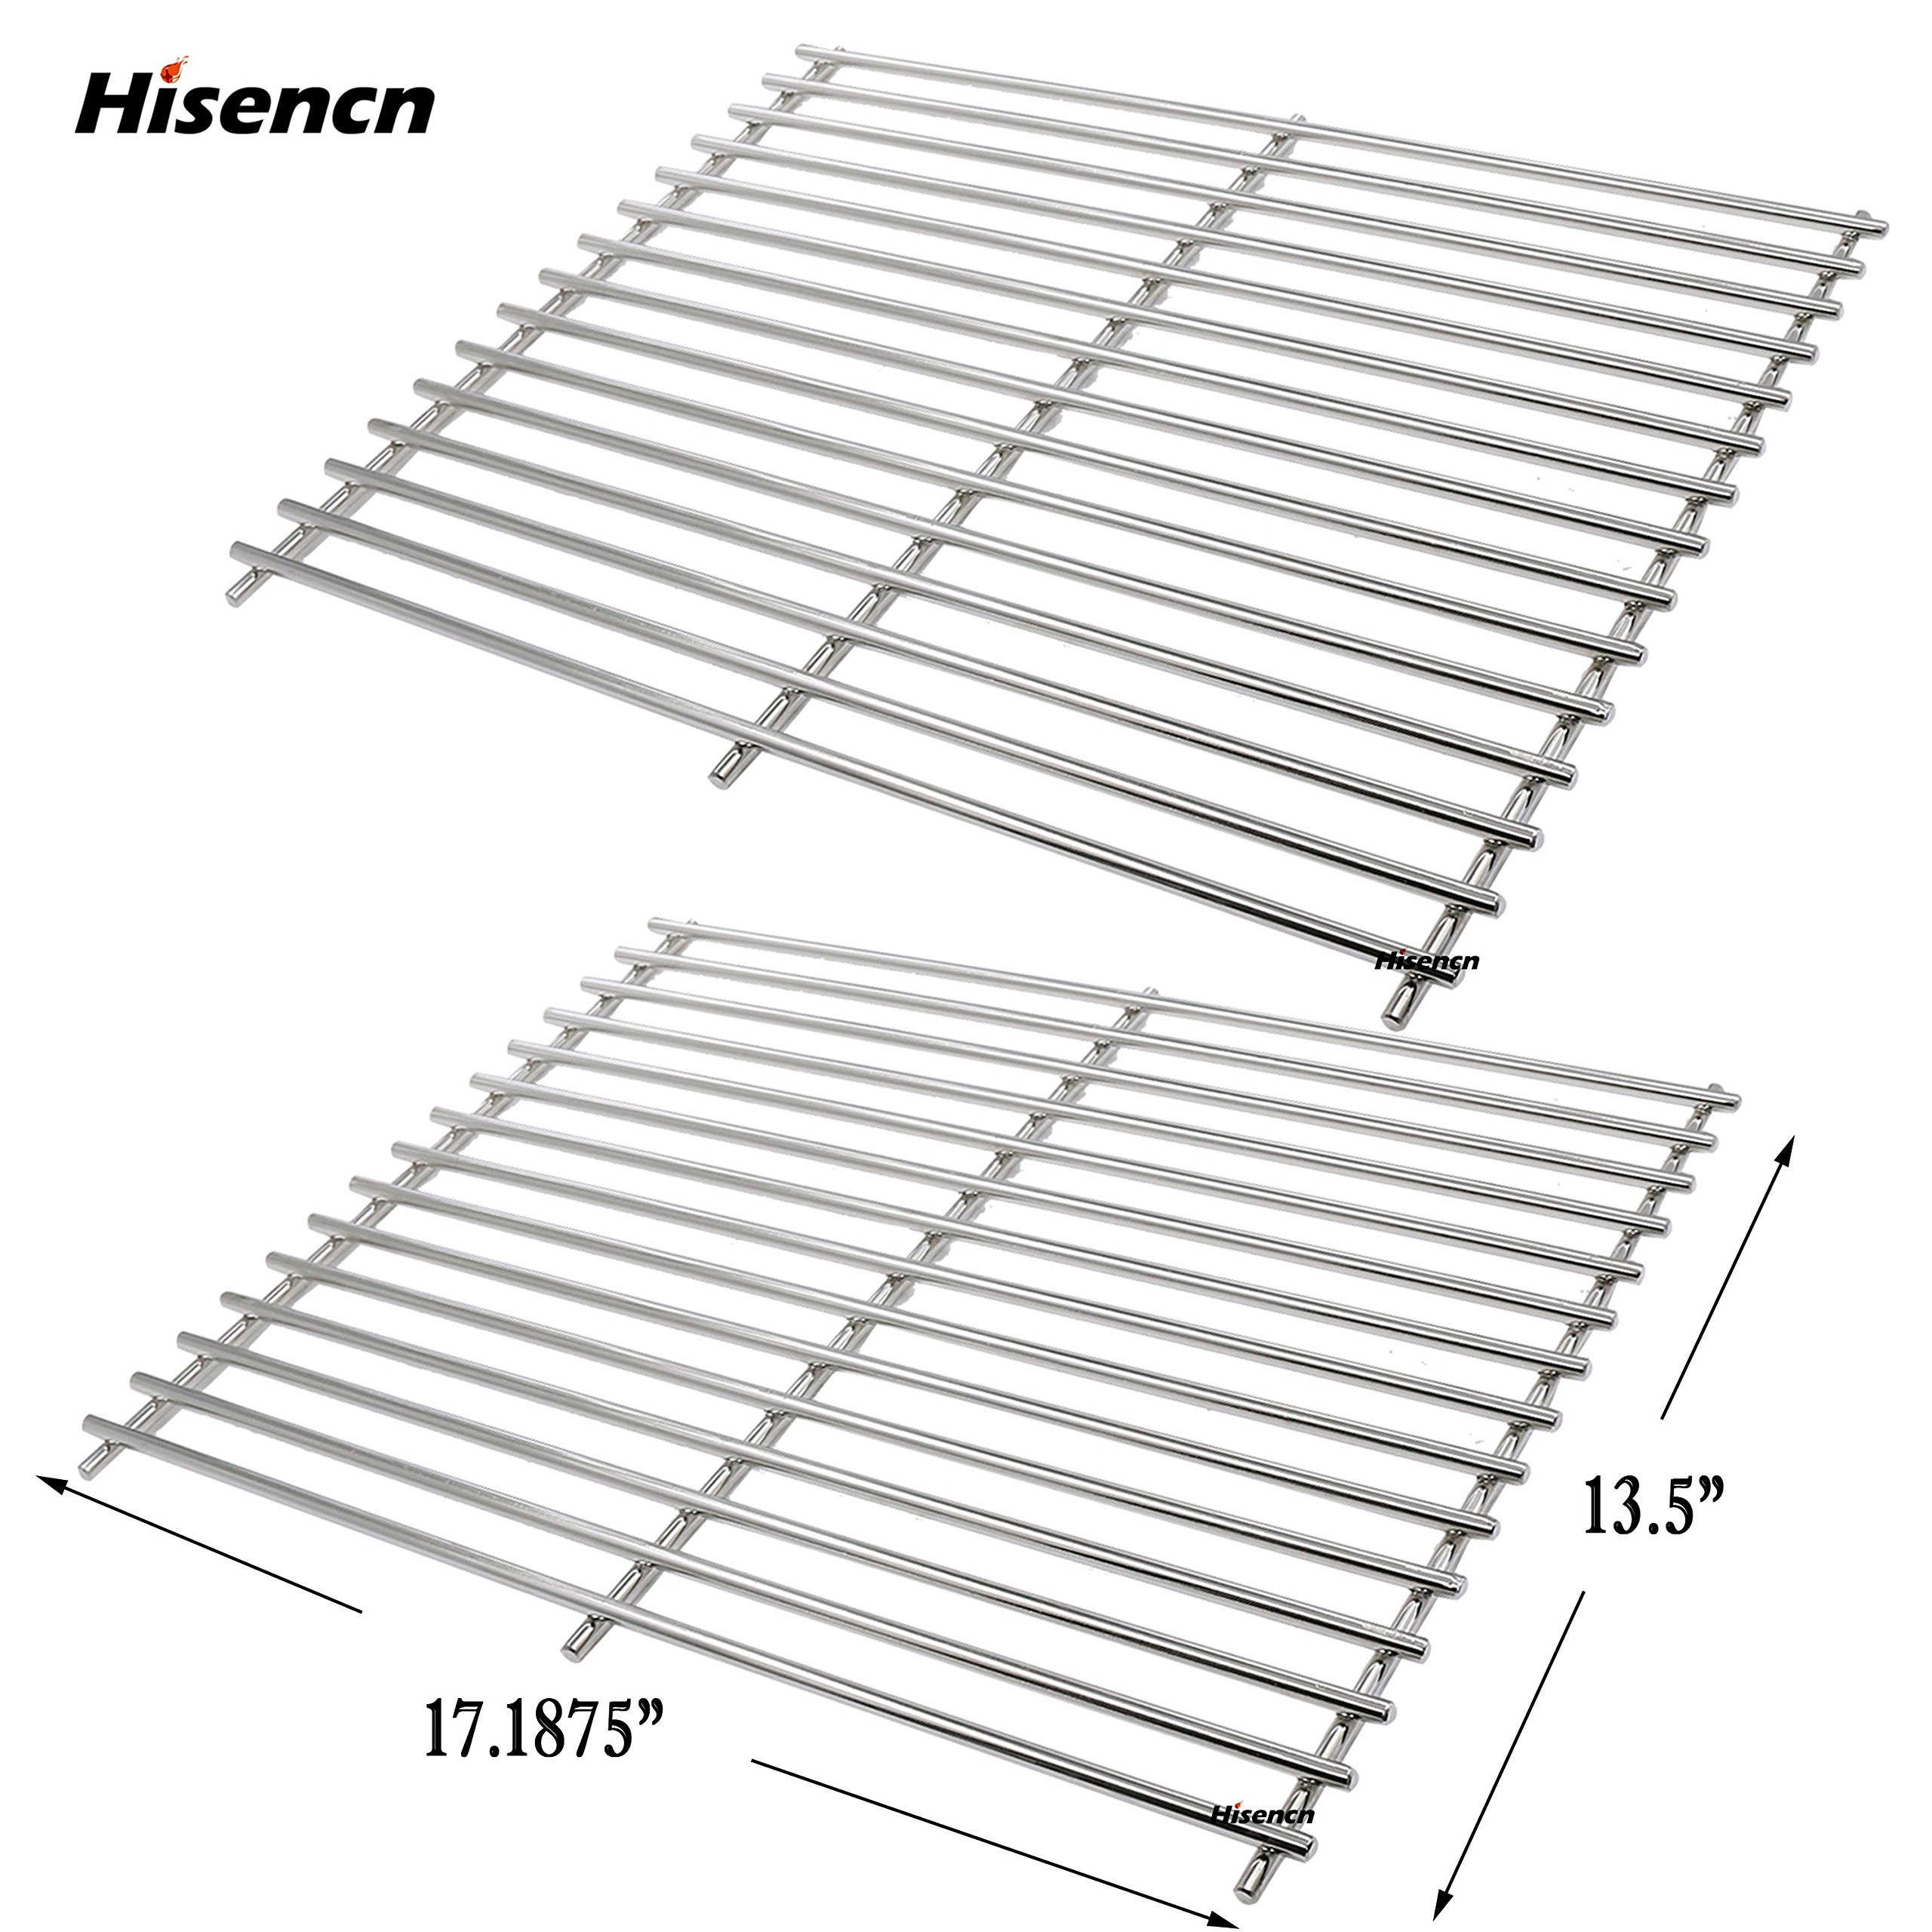 Hisencn Stainless Steel Solid Rod Replacement Parts Grill Grids Cooking Grates For Sunbeam, Nexgrill, Grill Master 720-0697 Gas Grill Cooking Grid Set of 2